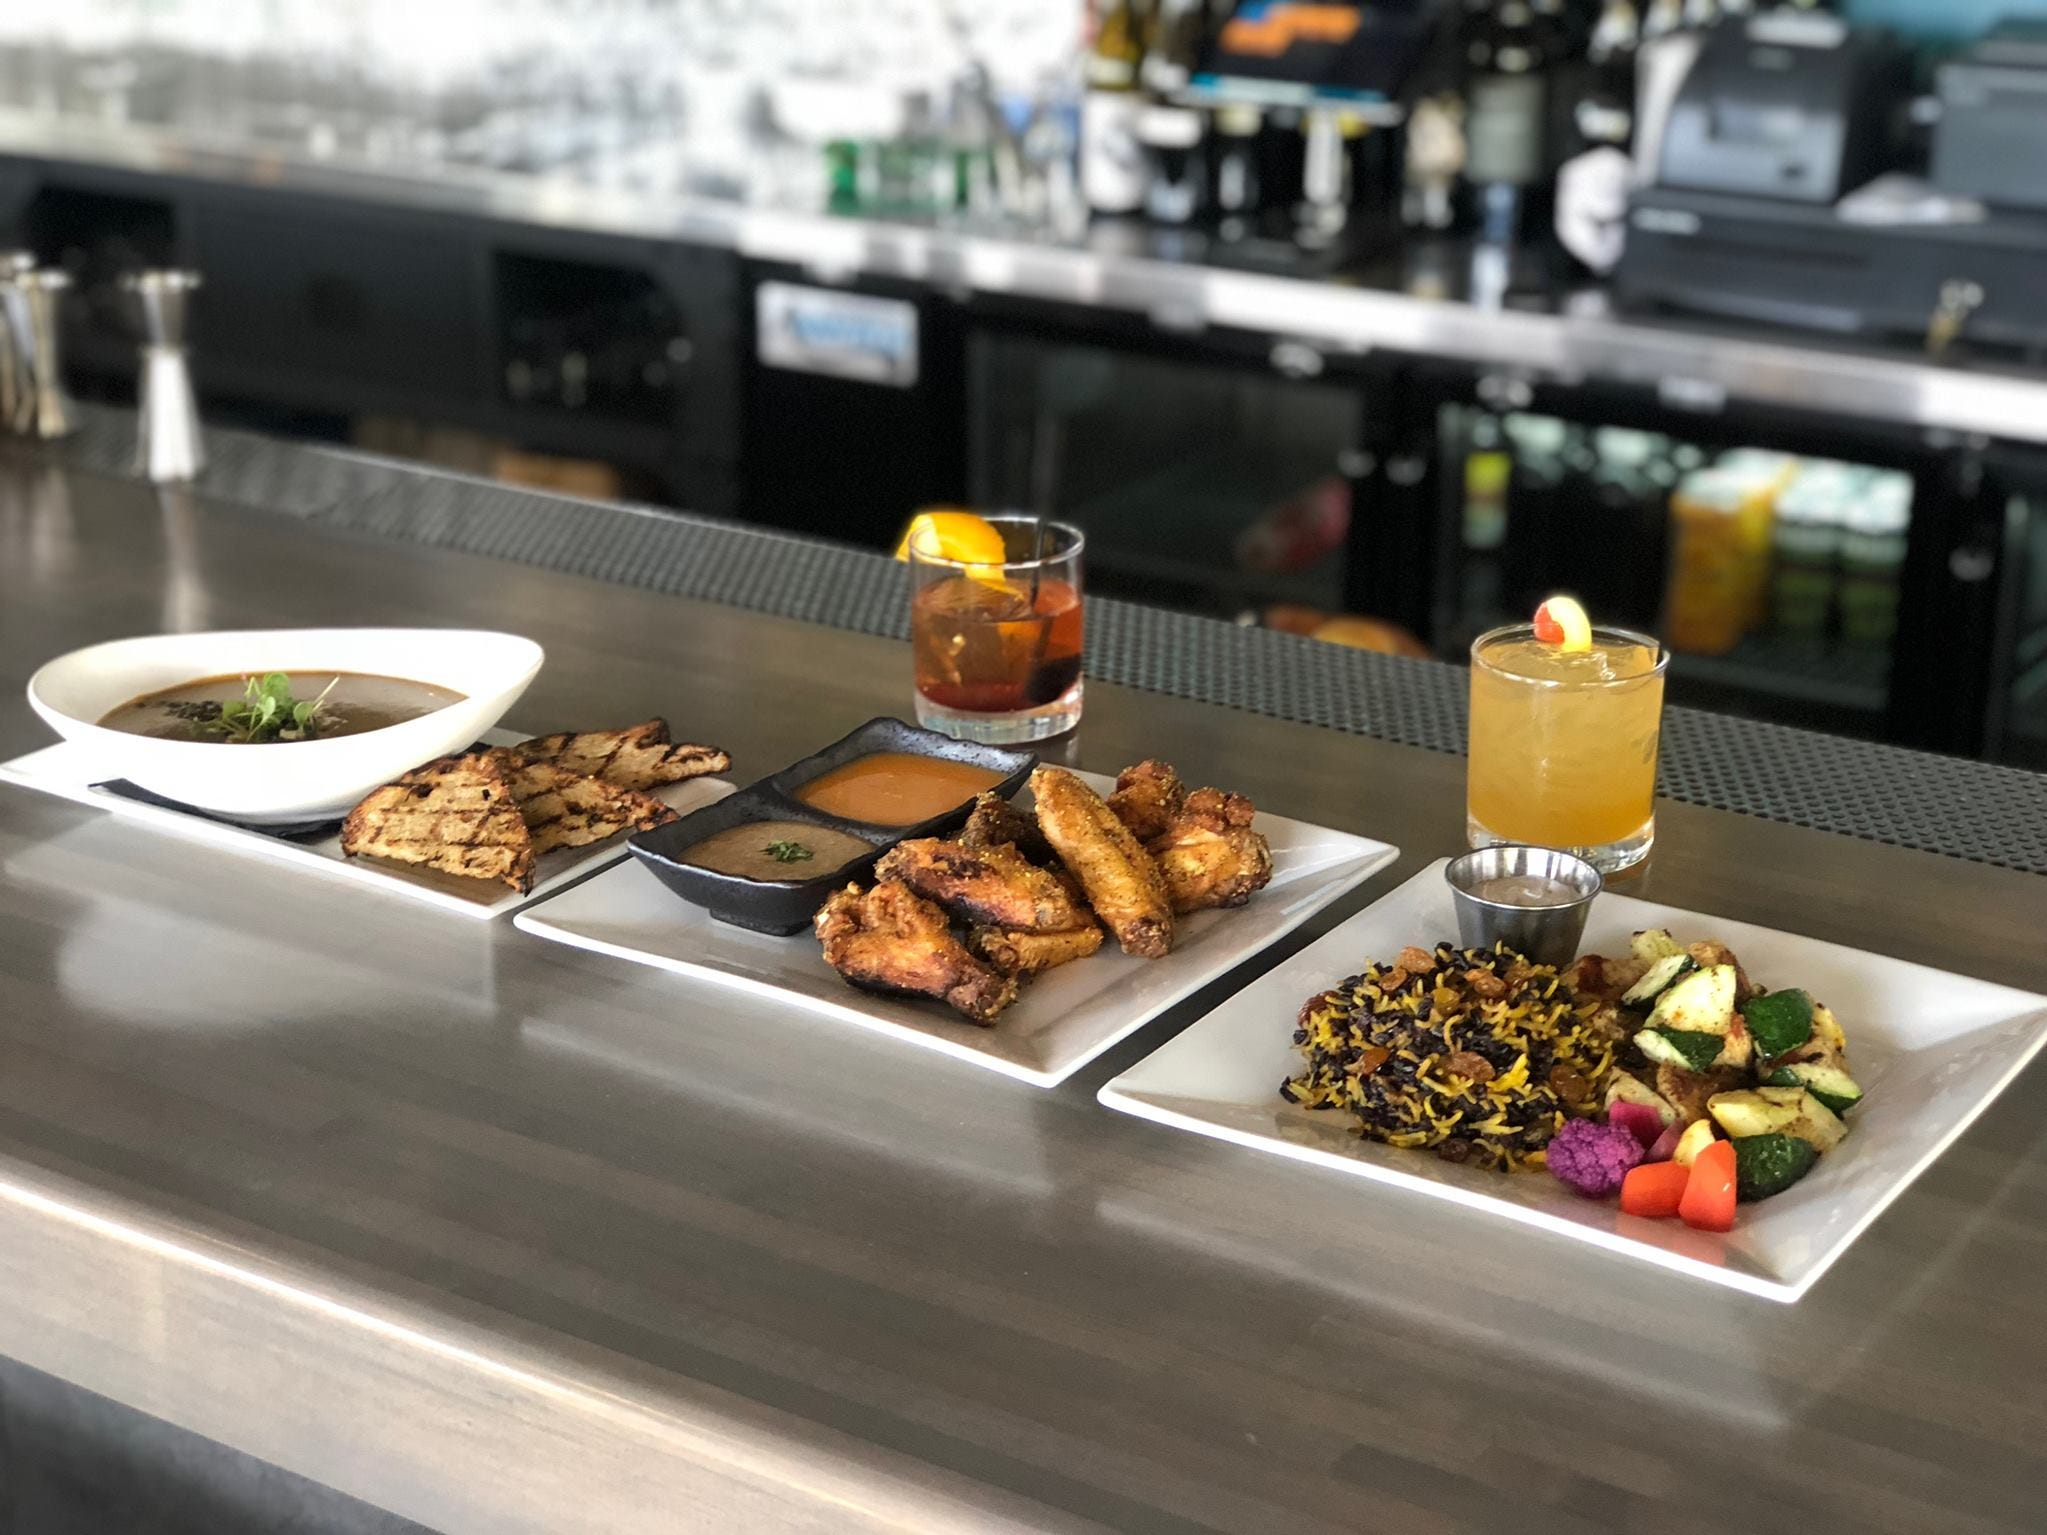 Chef Nicole Vargas puts a contemporary spin on traditional Mediterranean cuisine at Hundred North Bar & Kitchen in Gilbert.